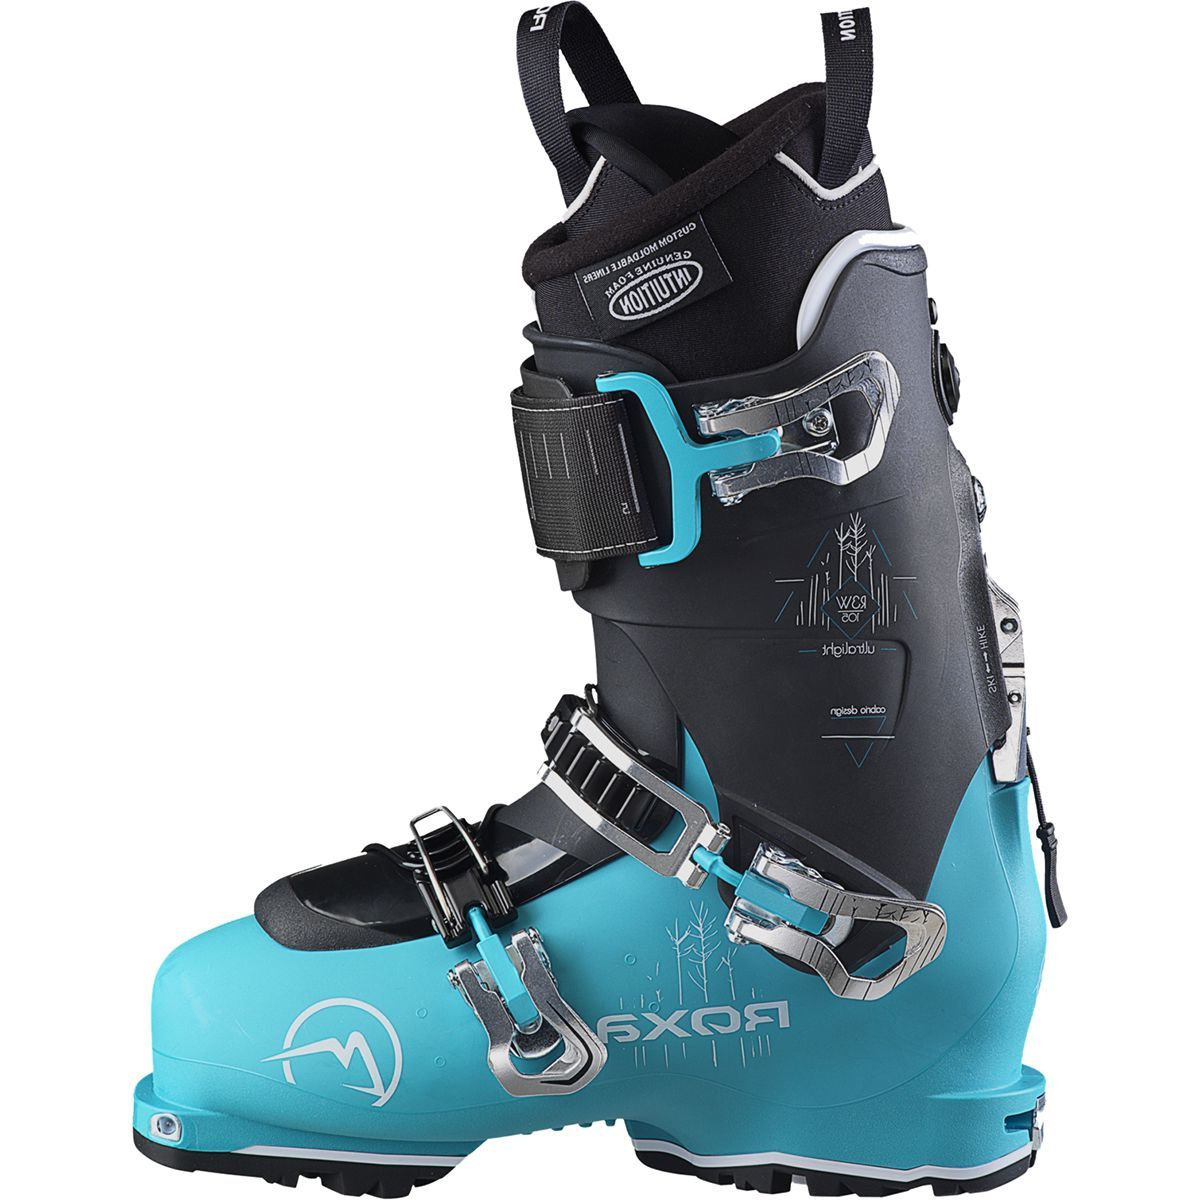 Roxa R3W 105 T.I. Alpine Touring Boot - Women's